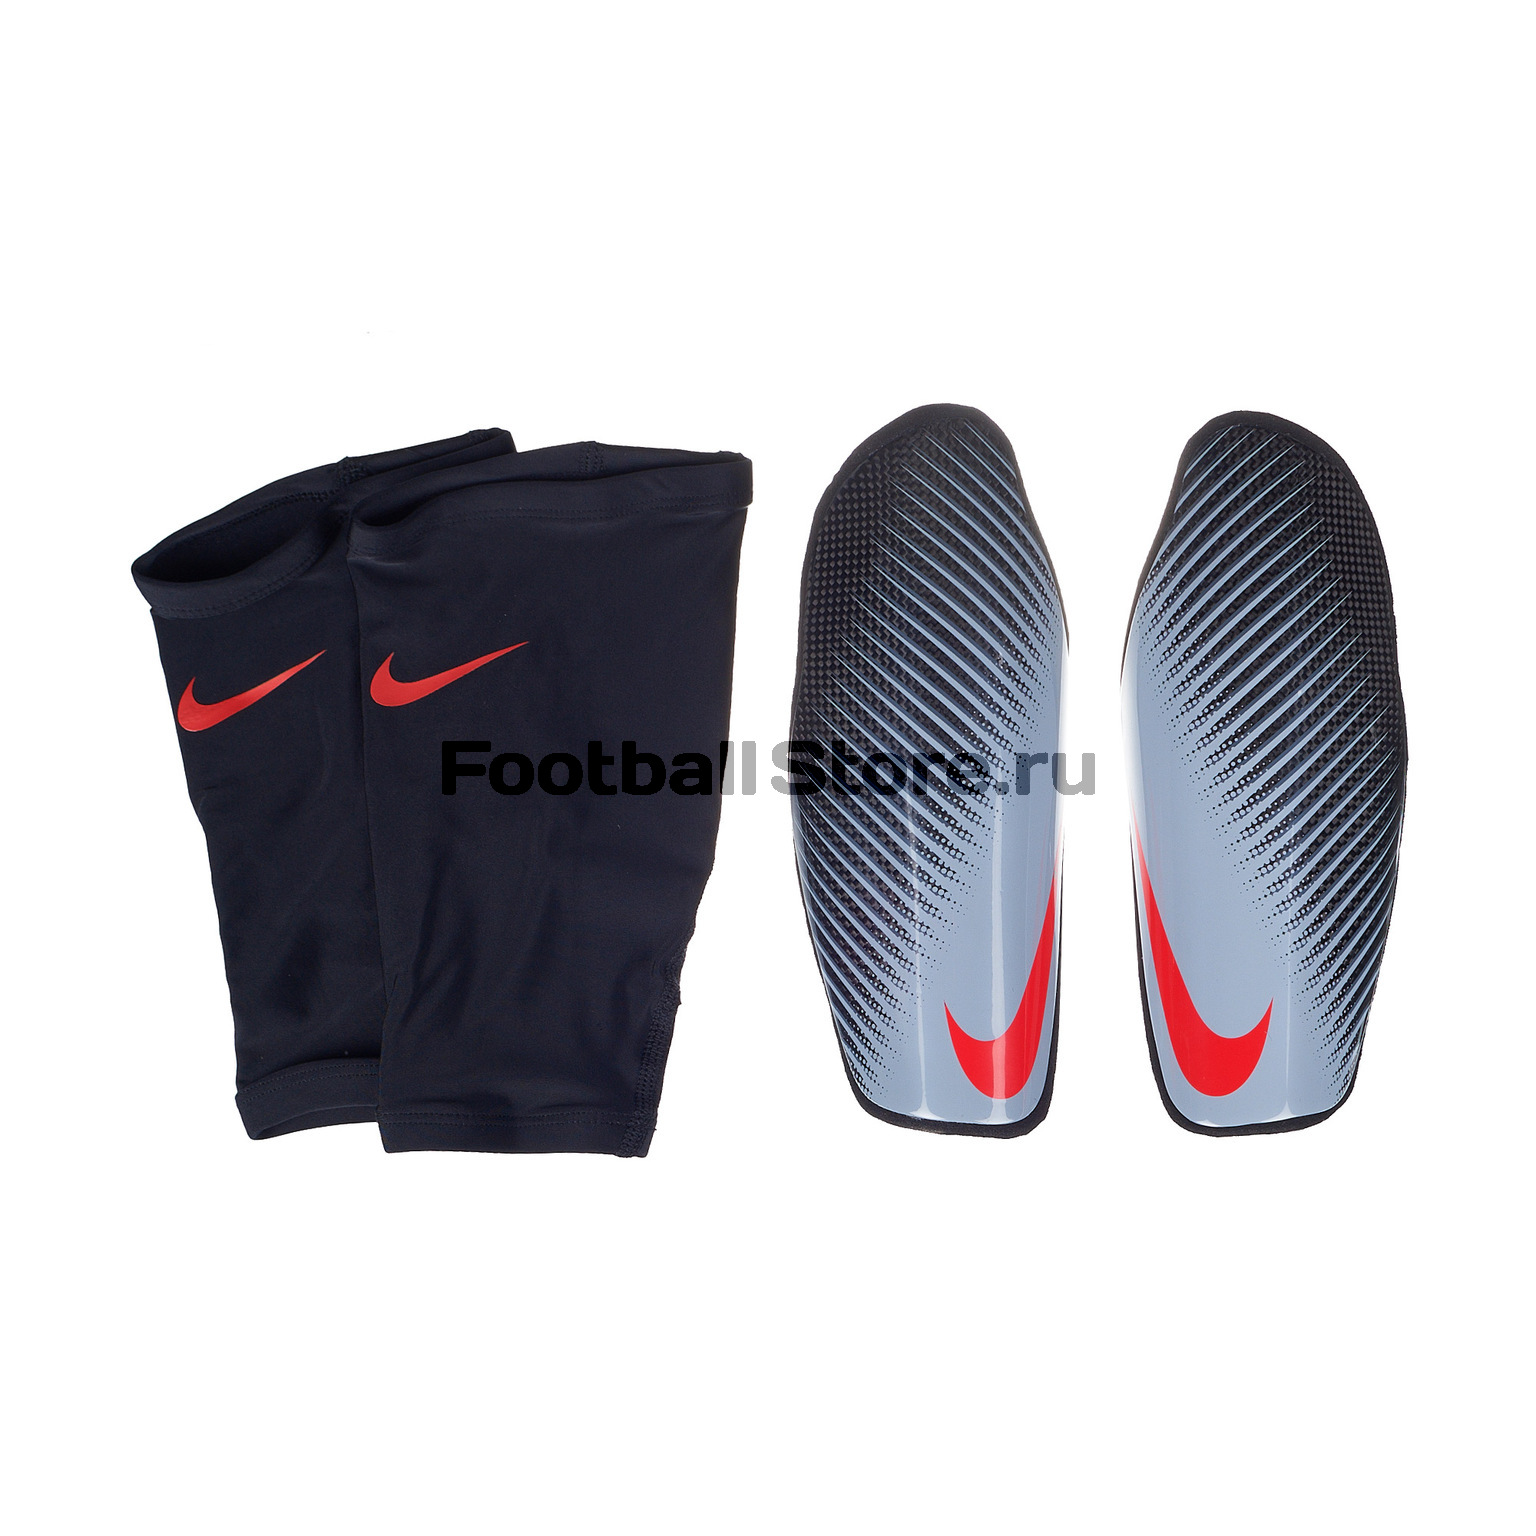 Щитки Nike NK Prestige Carbonite GRD SP2108-070 щитки nike щитки nk merc lt grd